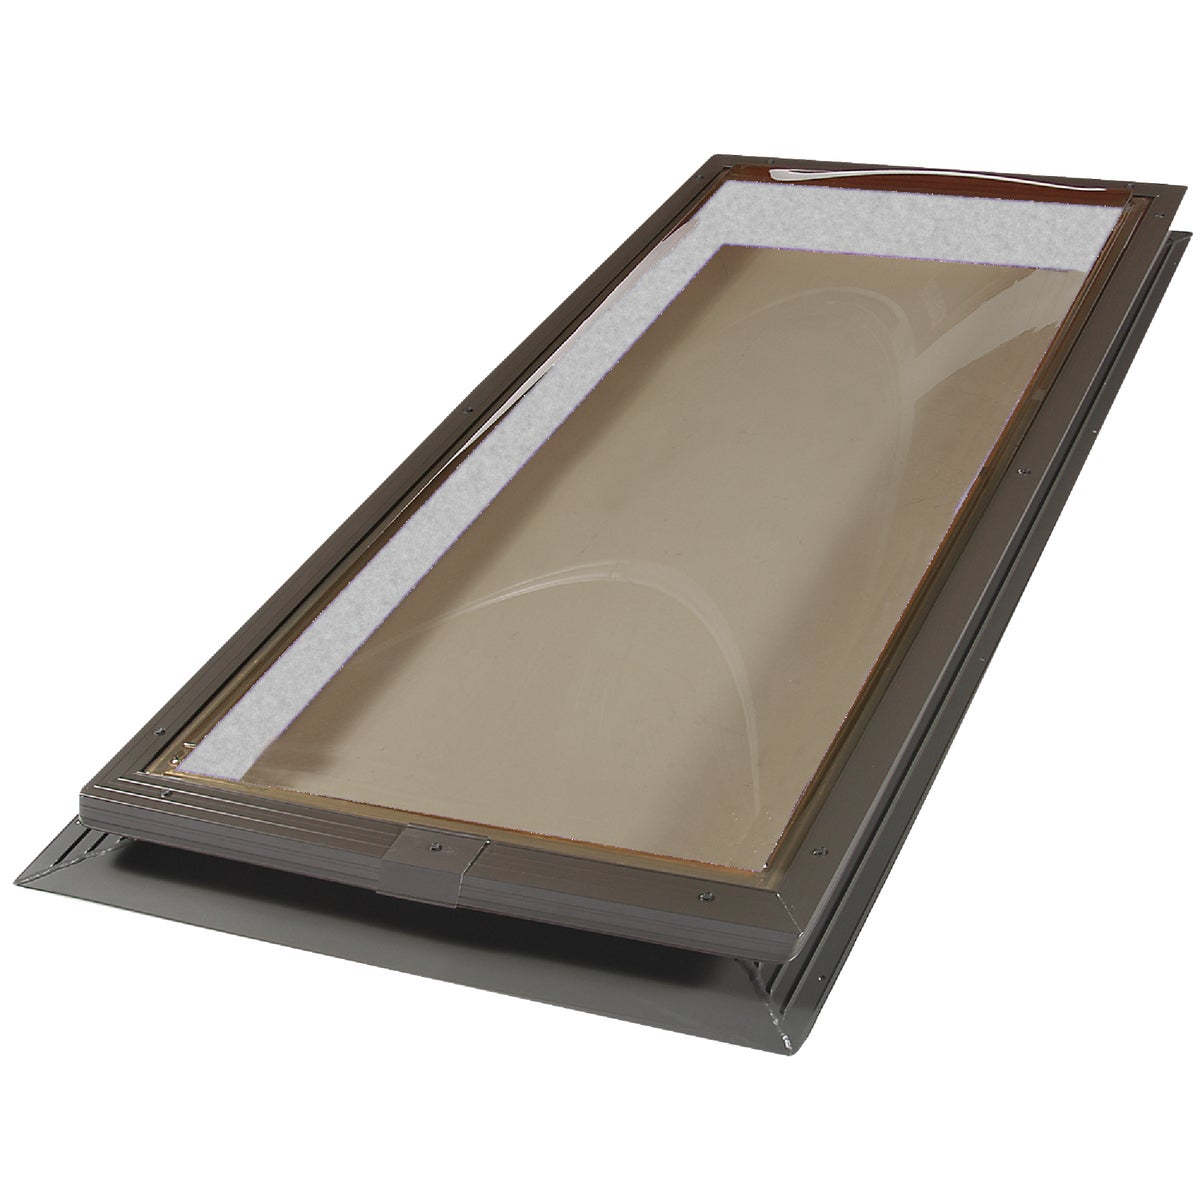 2X4 BRZ 2-DOME SKYLIGHT - SFA2246BCB by Sun Tek Manuf Inc